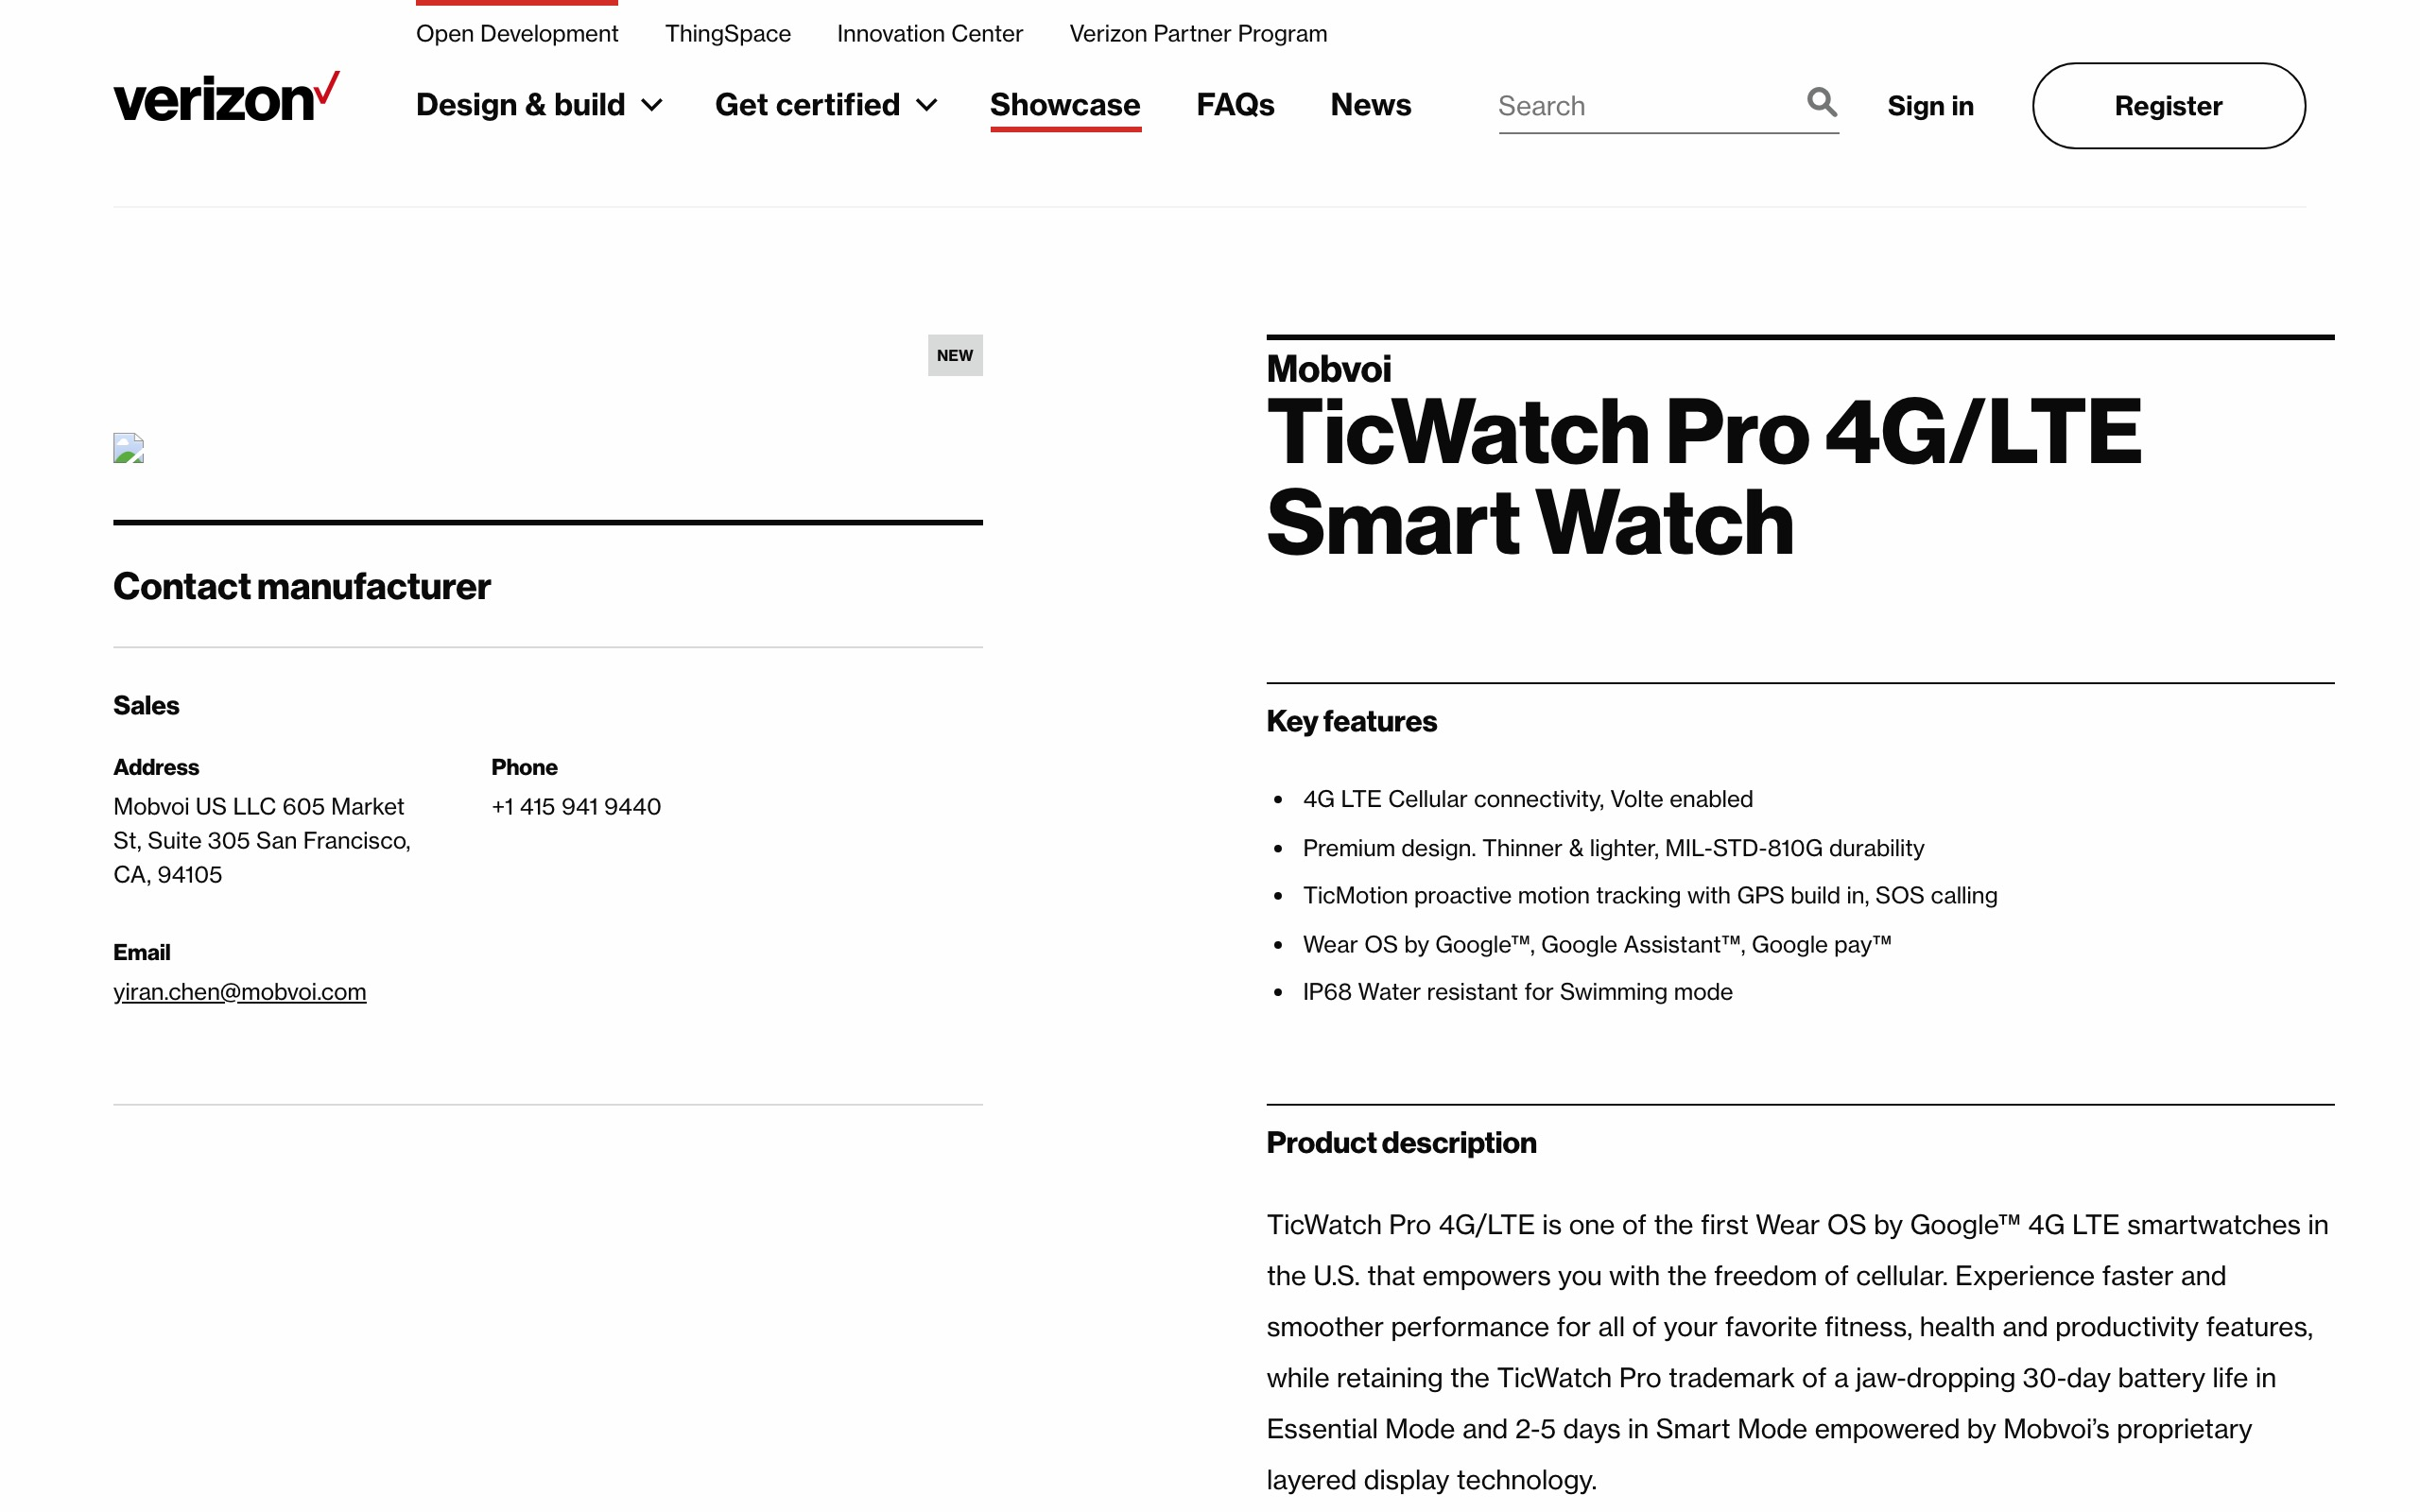 Verizon developer site reveals 'TicWatch Pro 4G/LTE